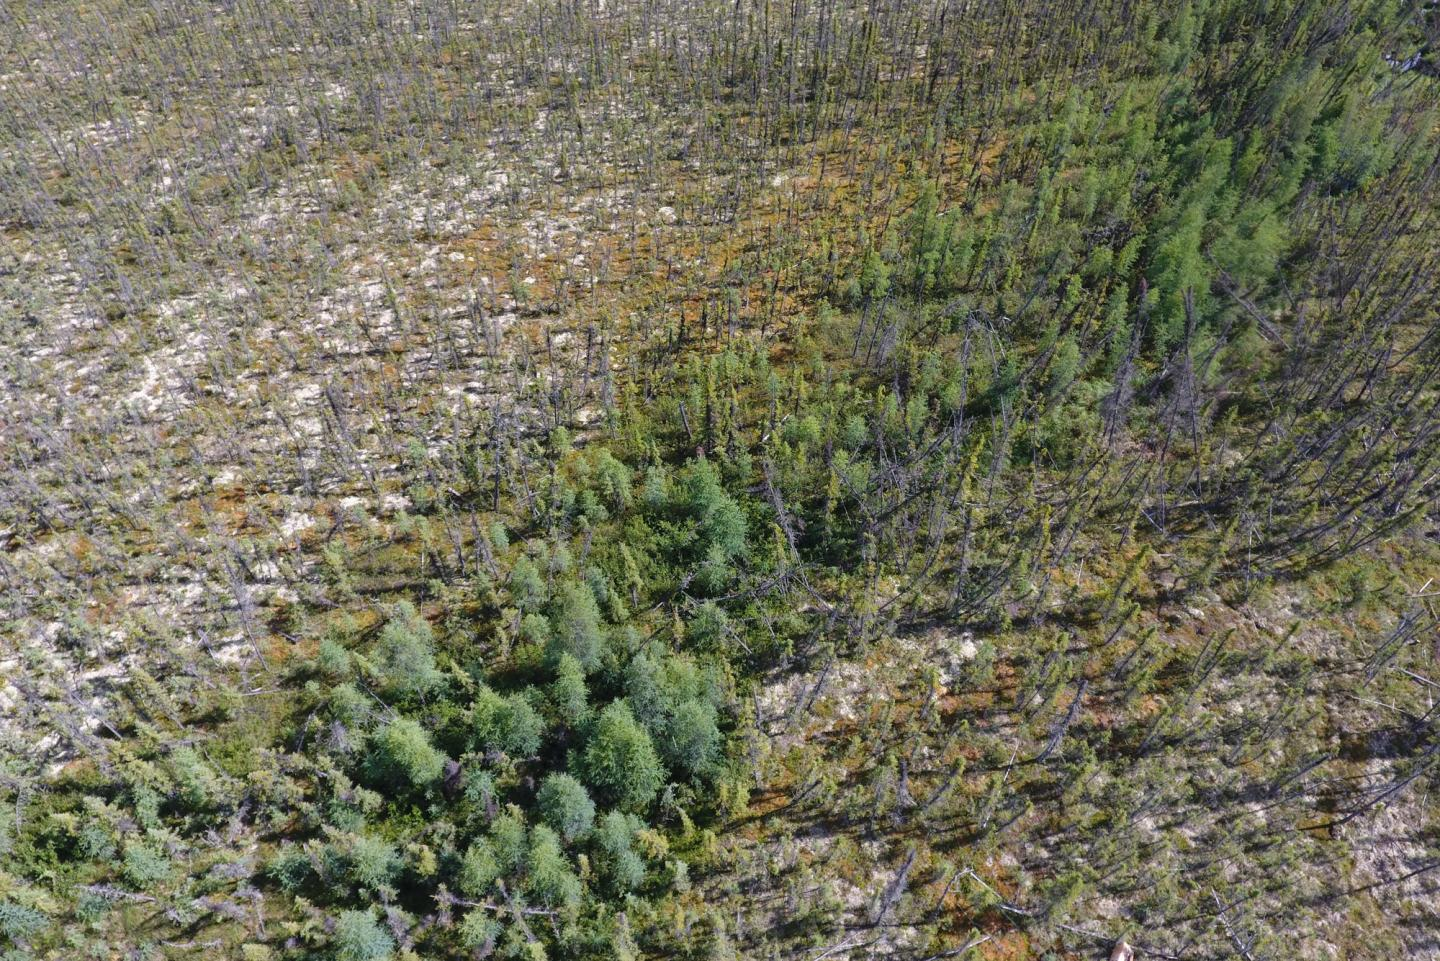 an aerial view of a stretch of woody forest that is thick in the middle but becomes more sparse going outward